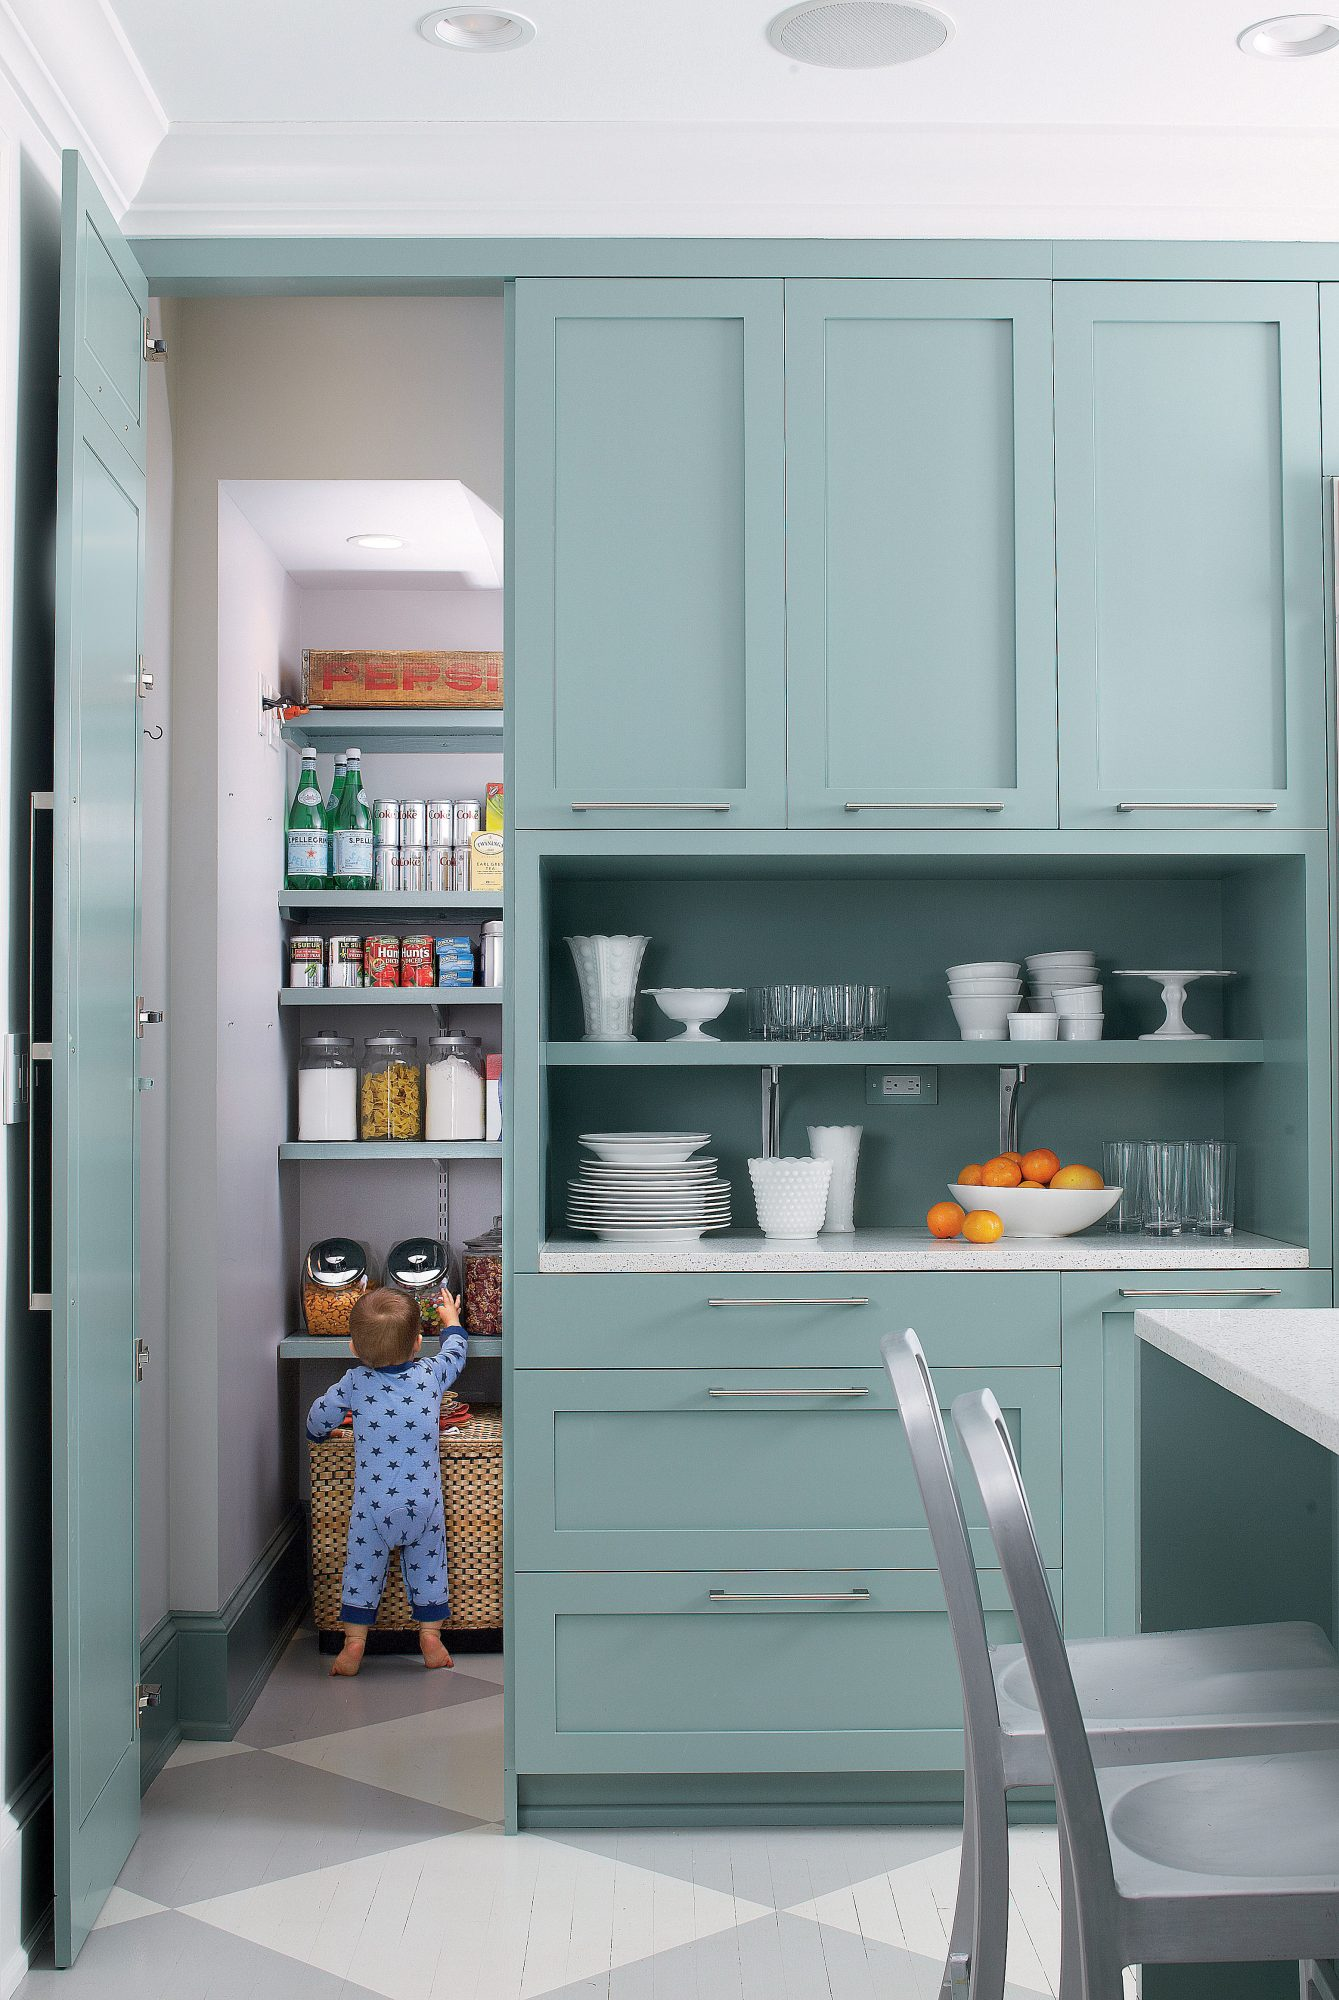 5 Tricks to Tackle Your Messy Pantry - Southern Living